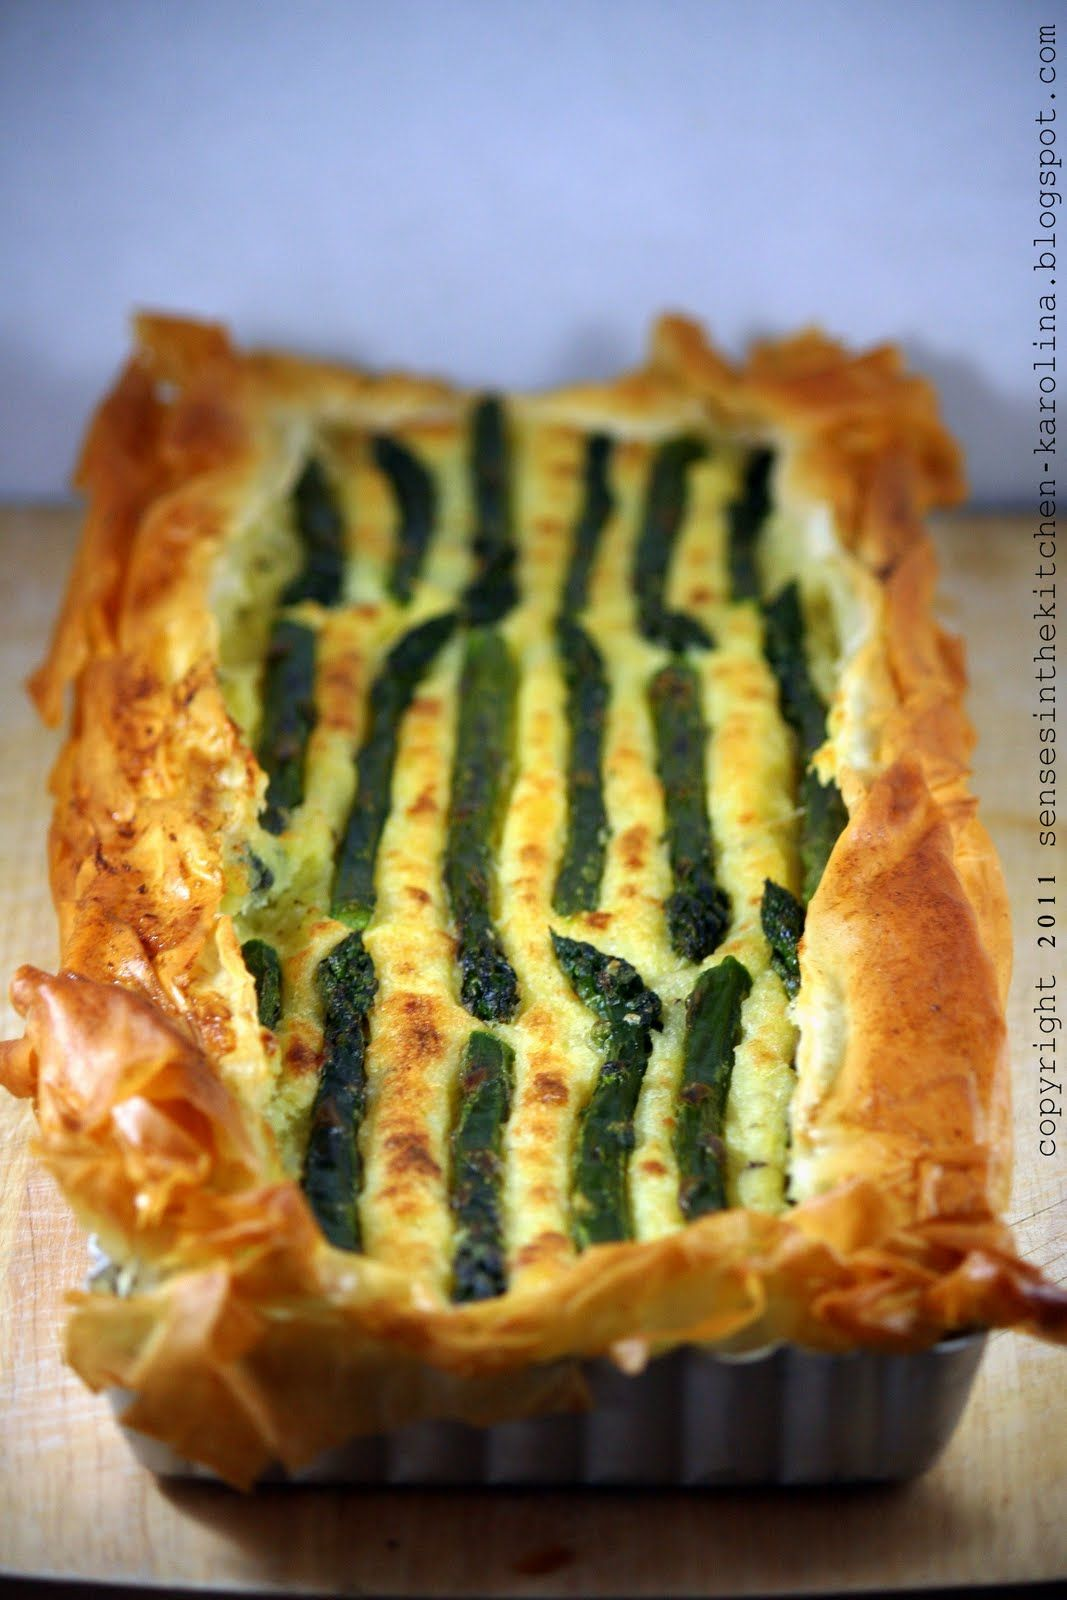 Senses in the kitchen asparagus potato filo pastry tart asparagus and phyllo pastry tart recipe source food forumfinder Gallery